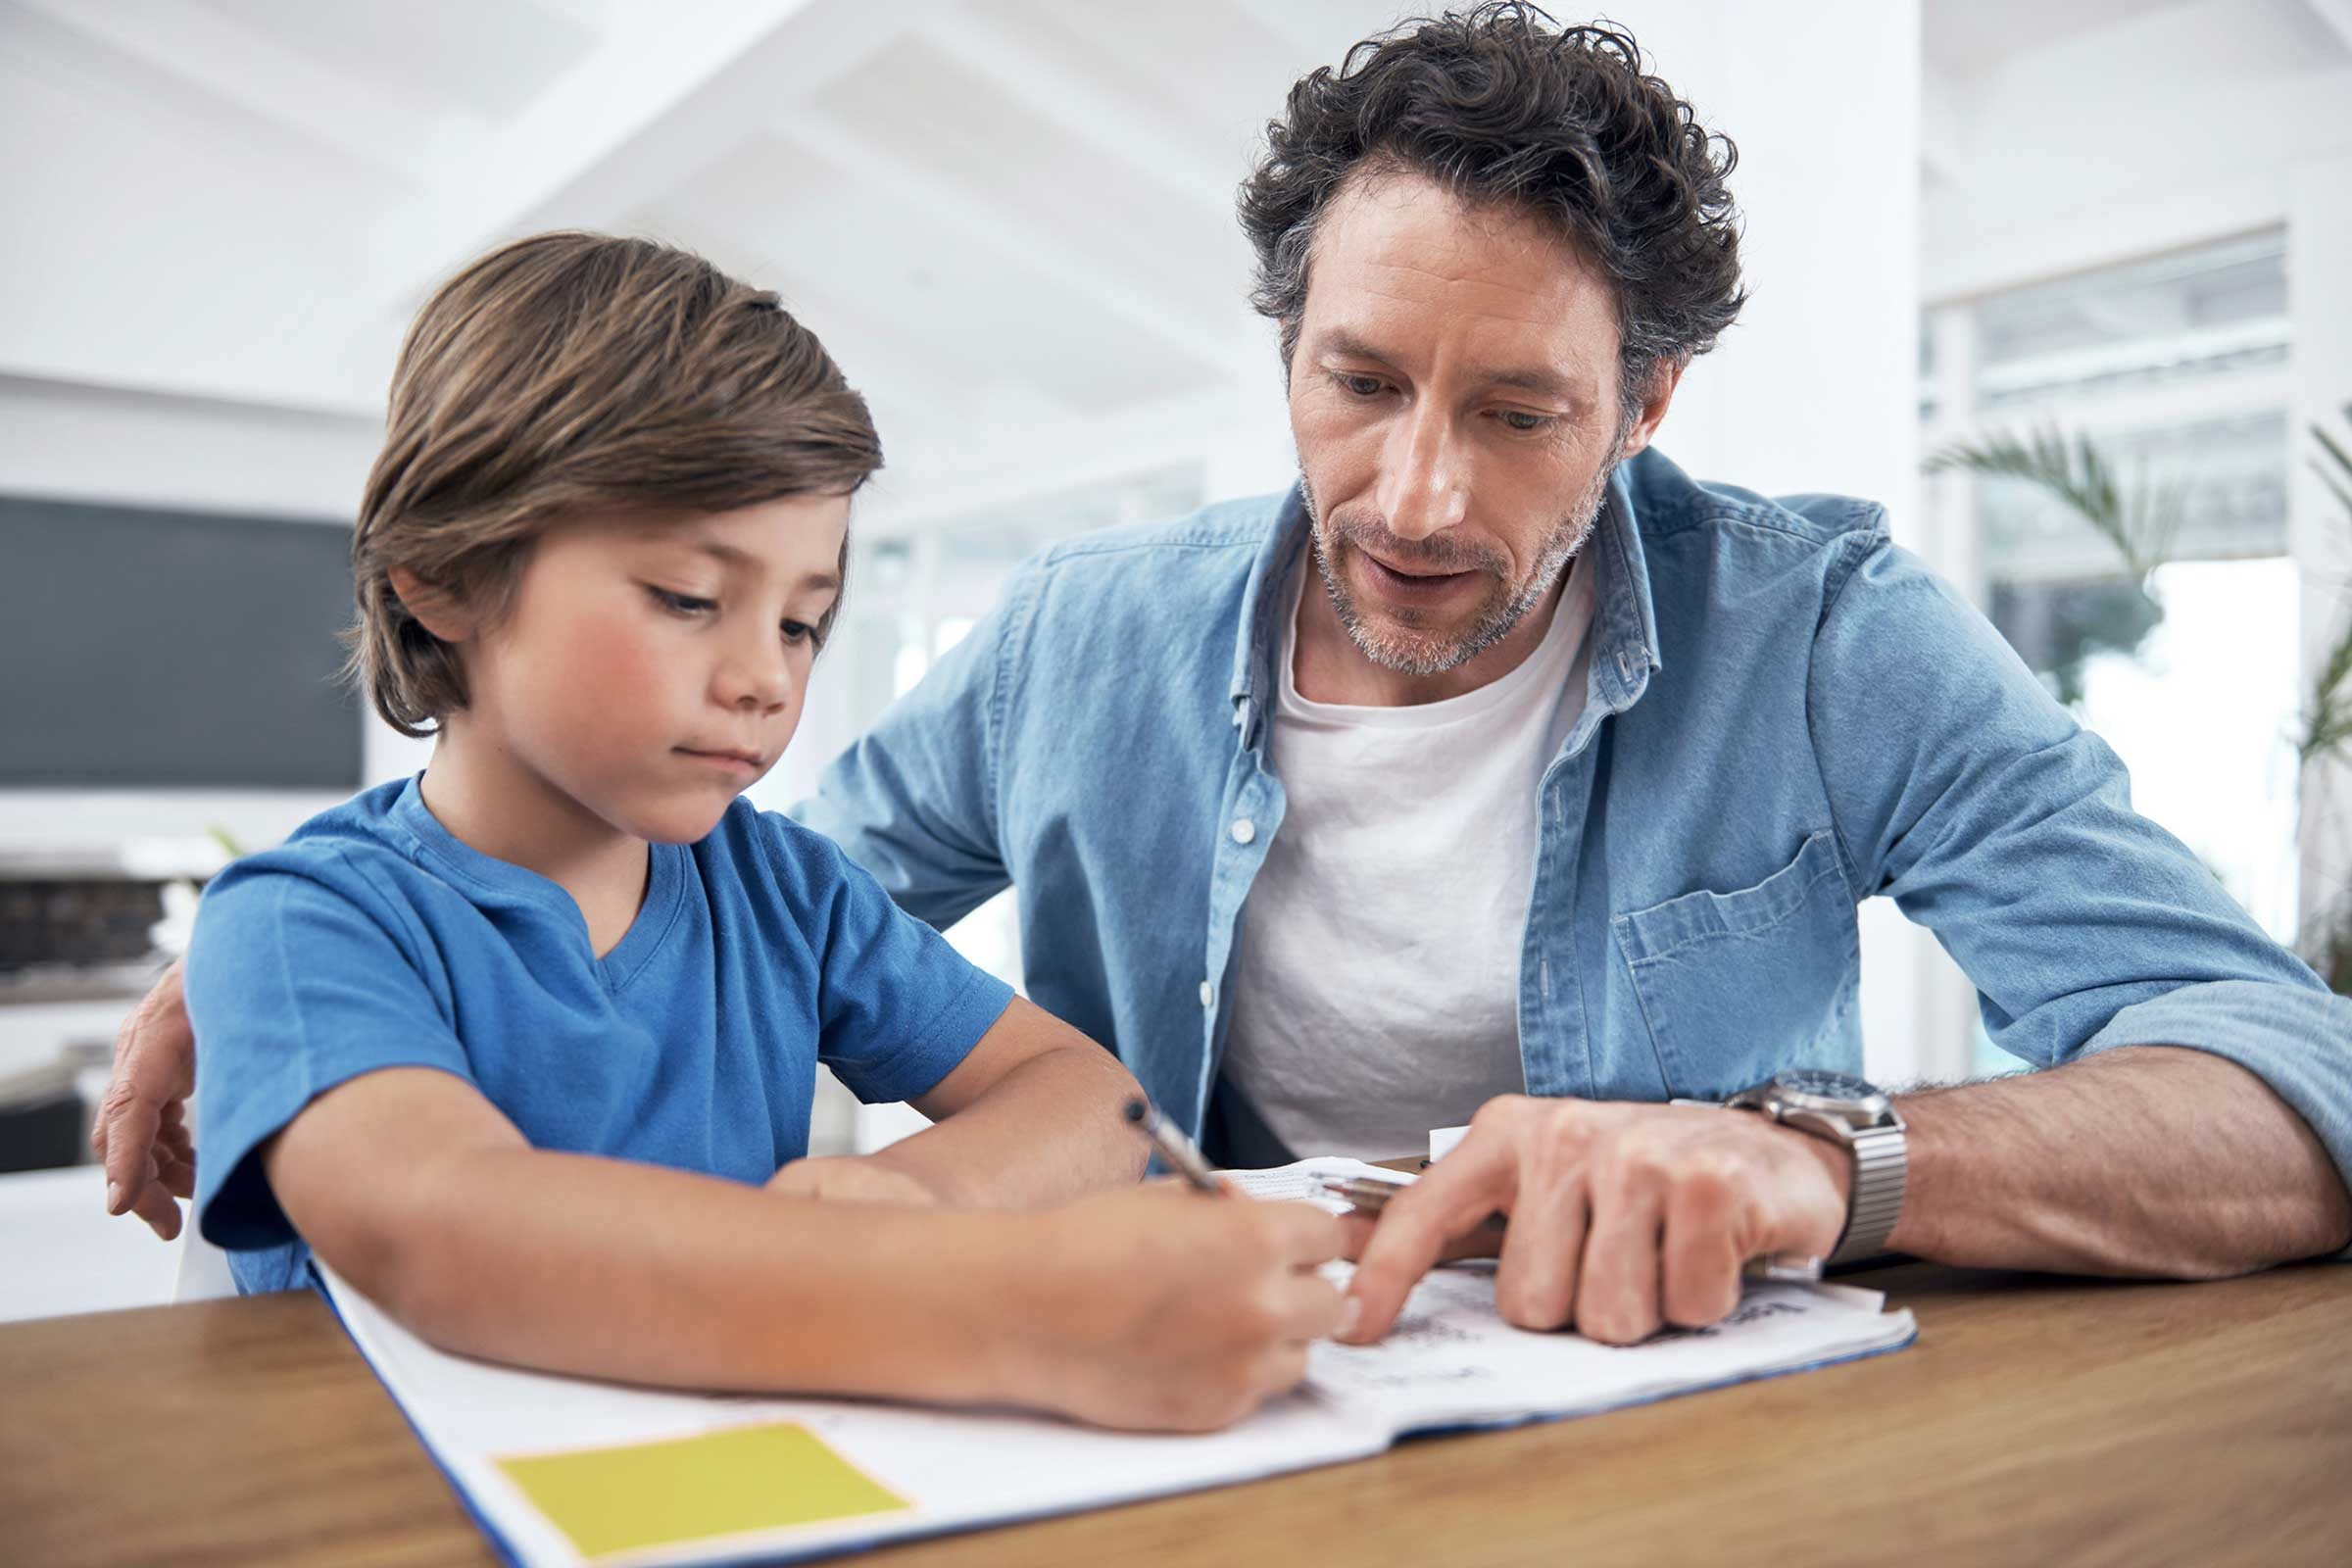 Educating your own child can be a burden